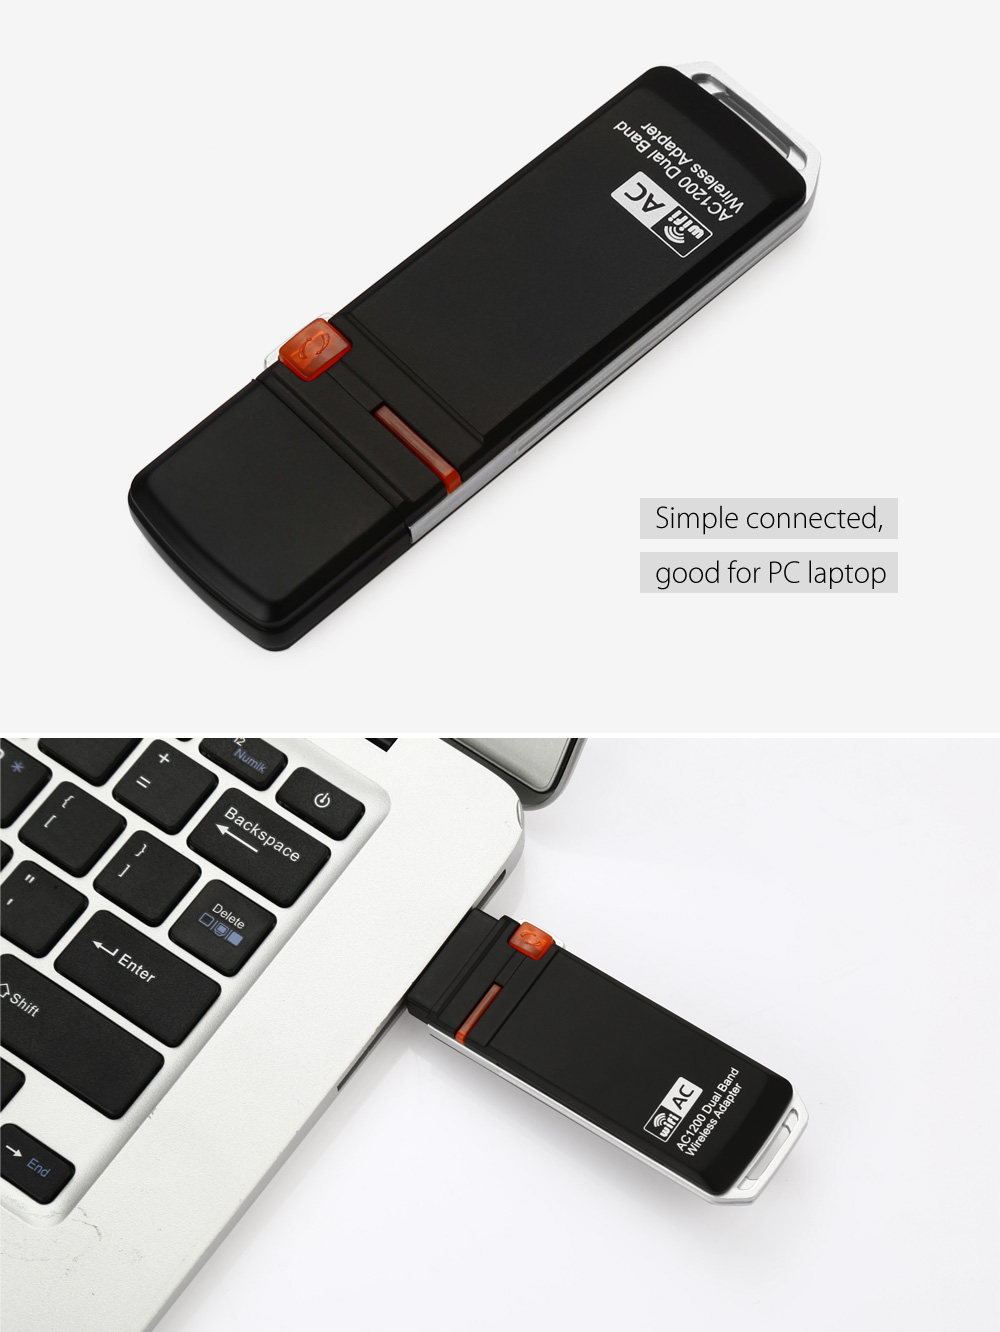 AC 1200Mbps Dual-band Wireless Networking Adapter 2.4GHz / 5.0GHz USB 3.0 WiFi